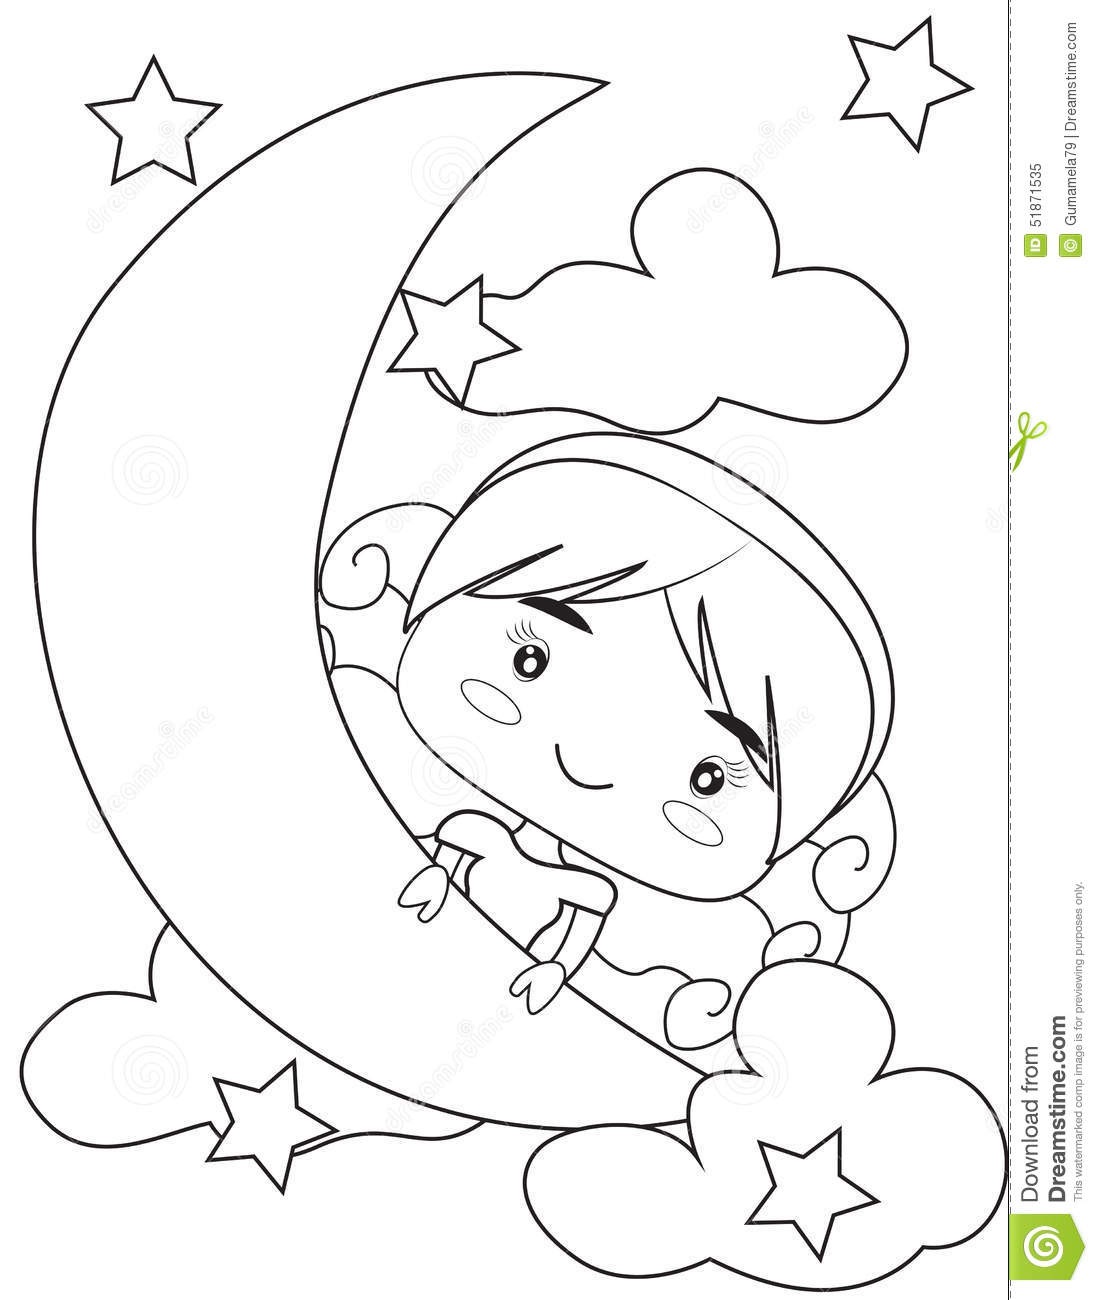 on the moon coloring page stock illustration image 51871535